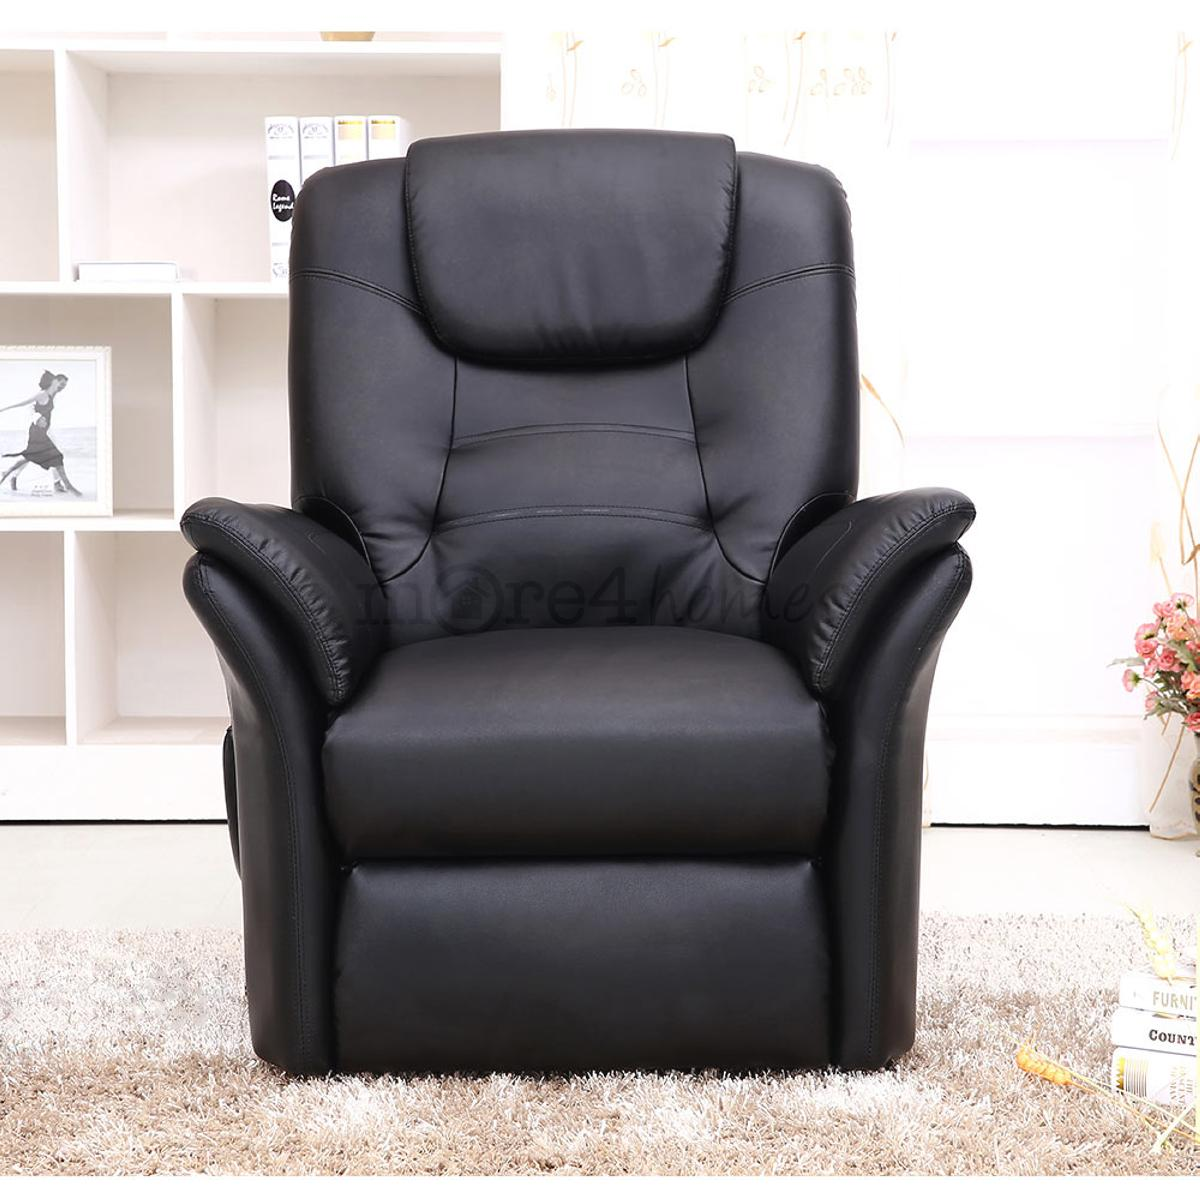 Real Leather Recliner Chairs Windsor Black Elecrtic Rise Recliner Real Leather Armchair